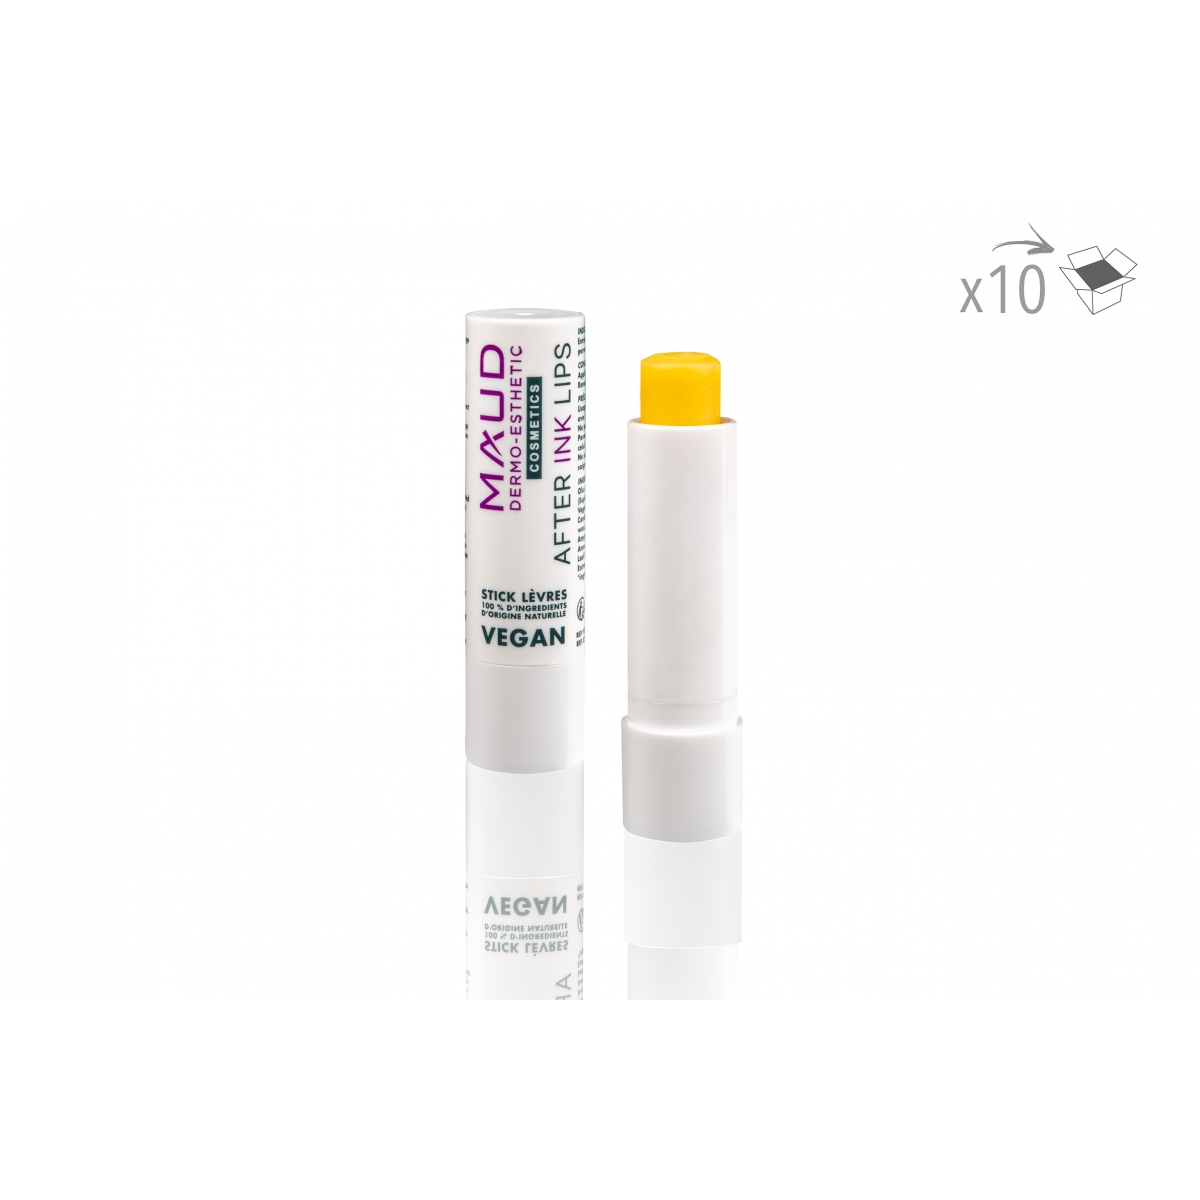 SOINS DERMOPIGMENTATION - NO NAME - STICK CICATRISANT DERMOPIGMENTATION LEVRES AFTER INK LIPS VEGAN (4 g) (x10)